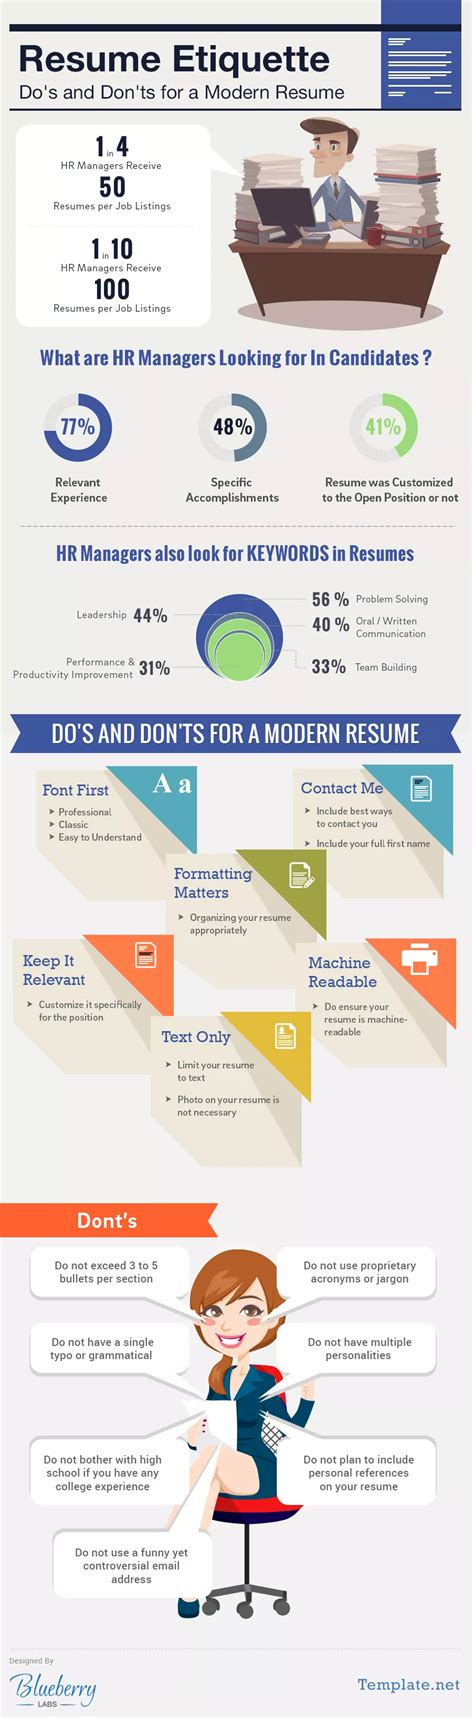 typical resume layout the qualify resume layout for 2015 2016 resume 2015